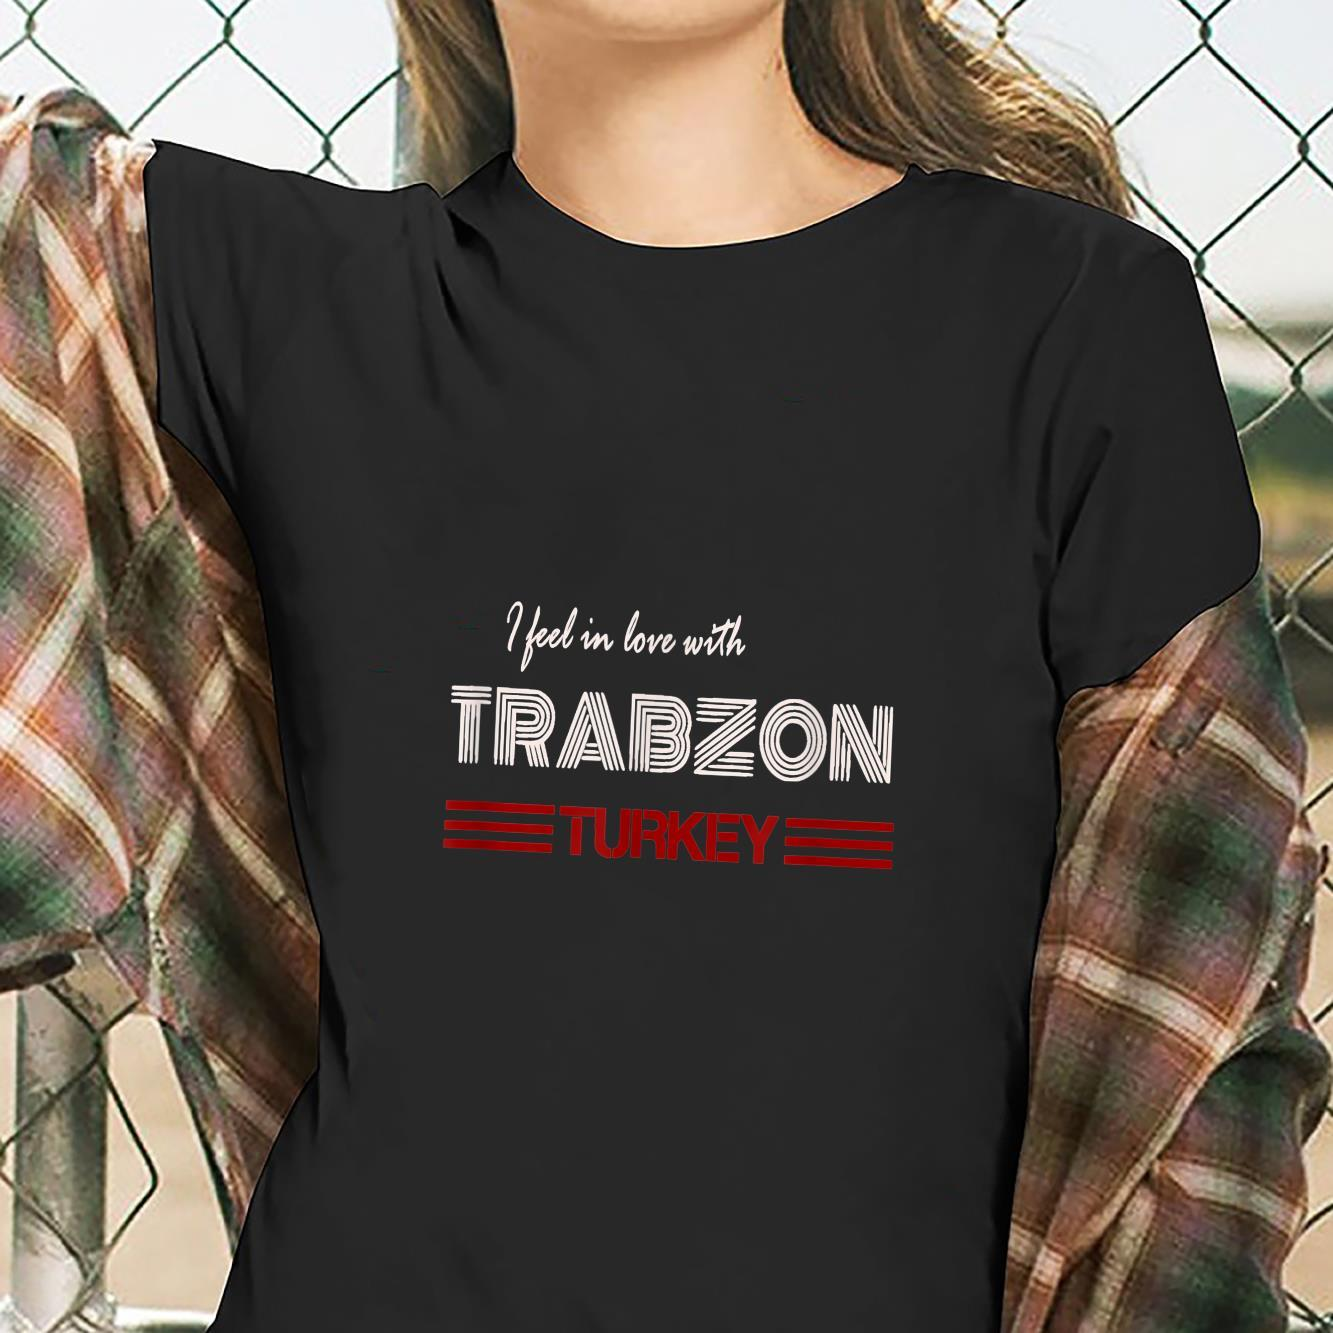 TShirt with Turkey Trabzon Design Ich Feel Mich in Trabzon in Love Shirt ladies tee